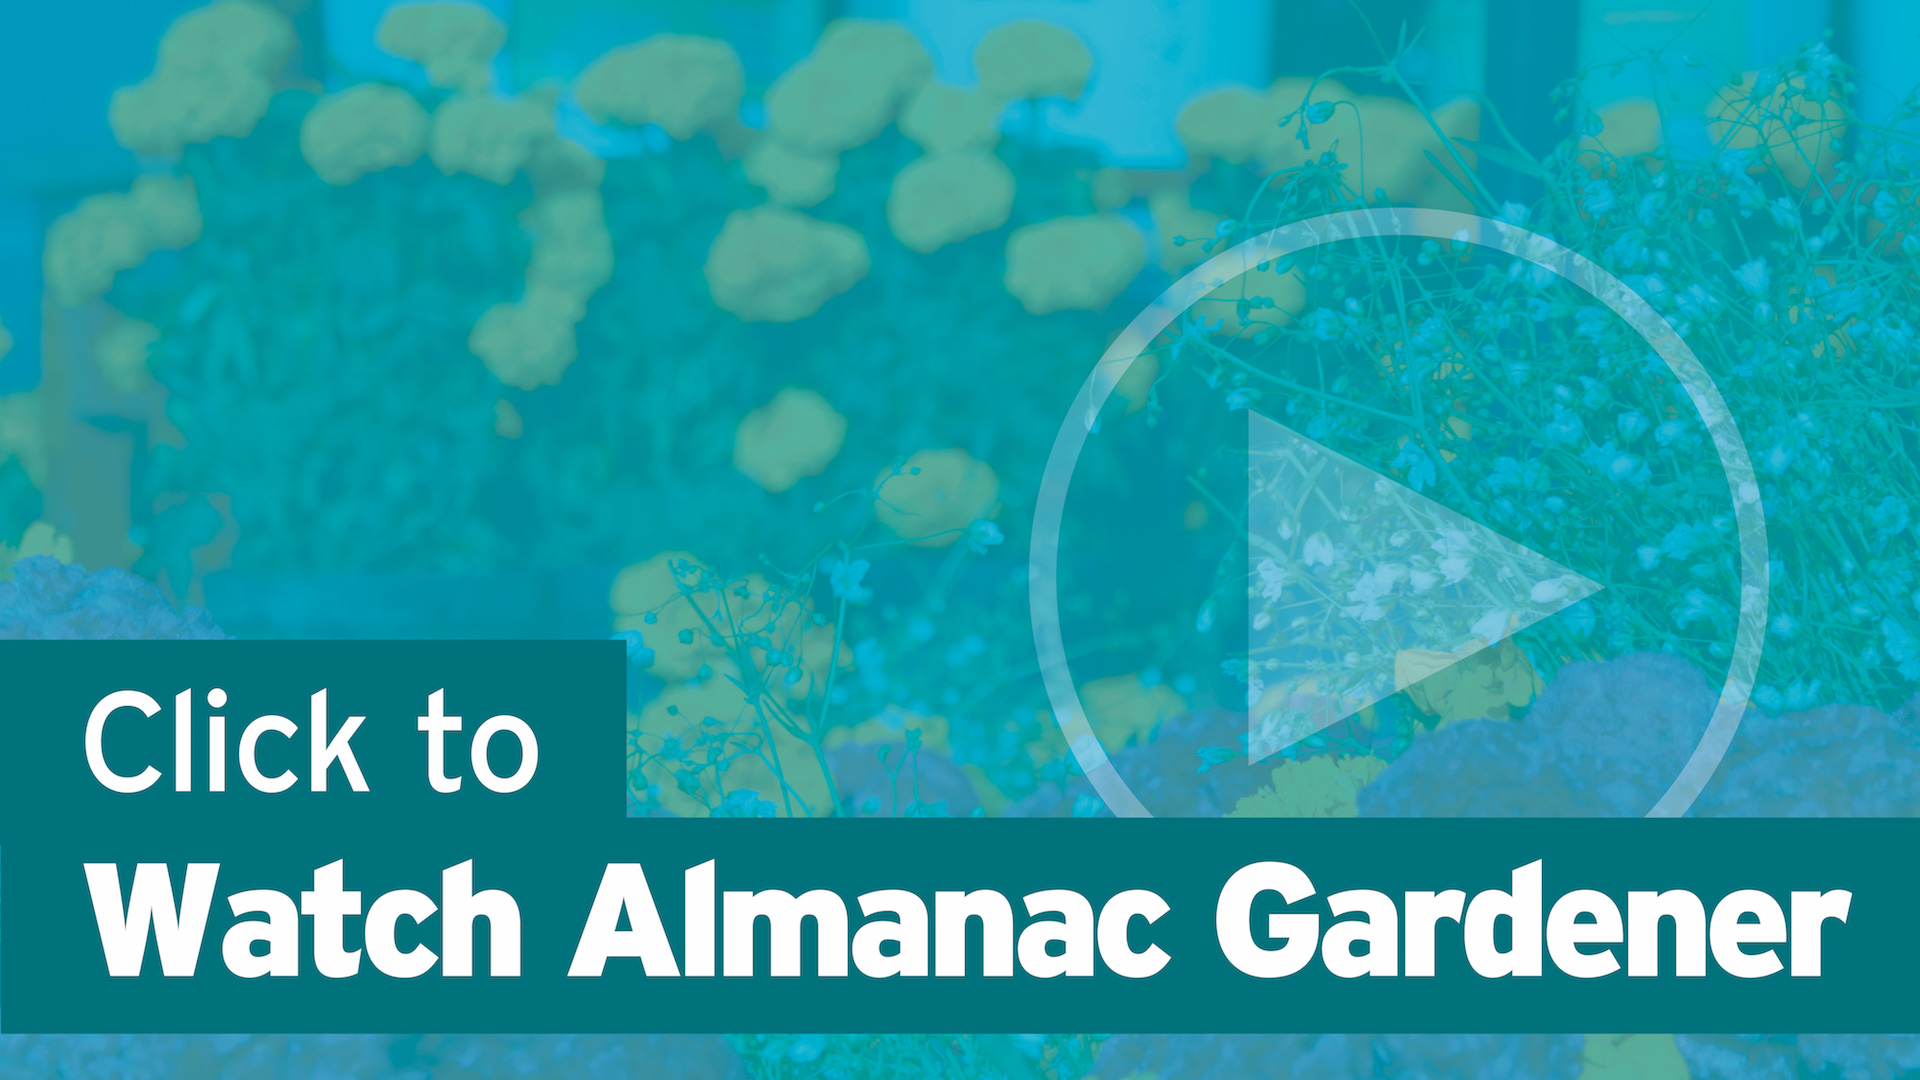 Click Here to Watch Almanac Gardner